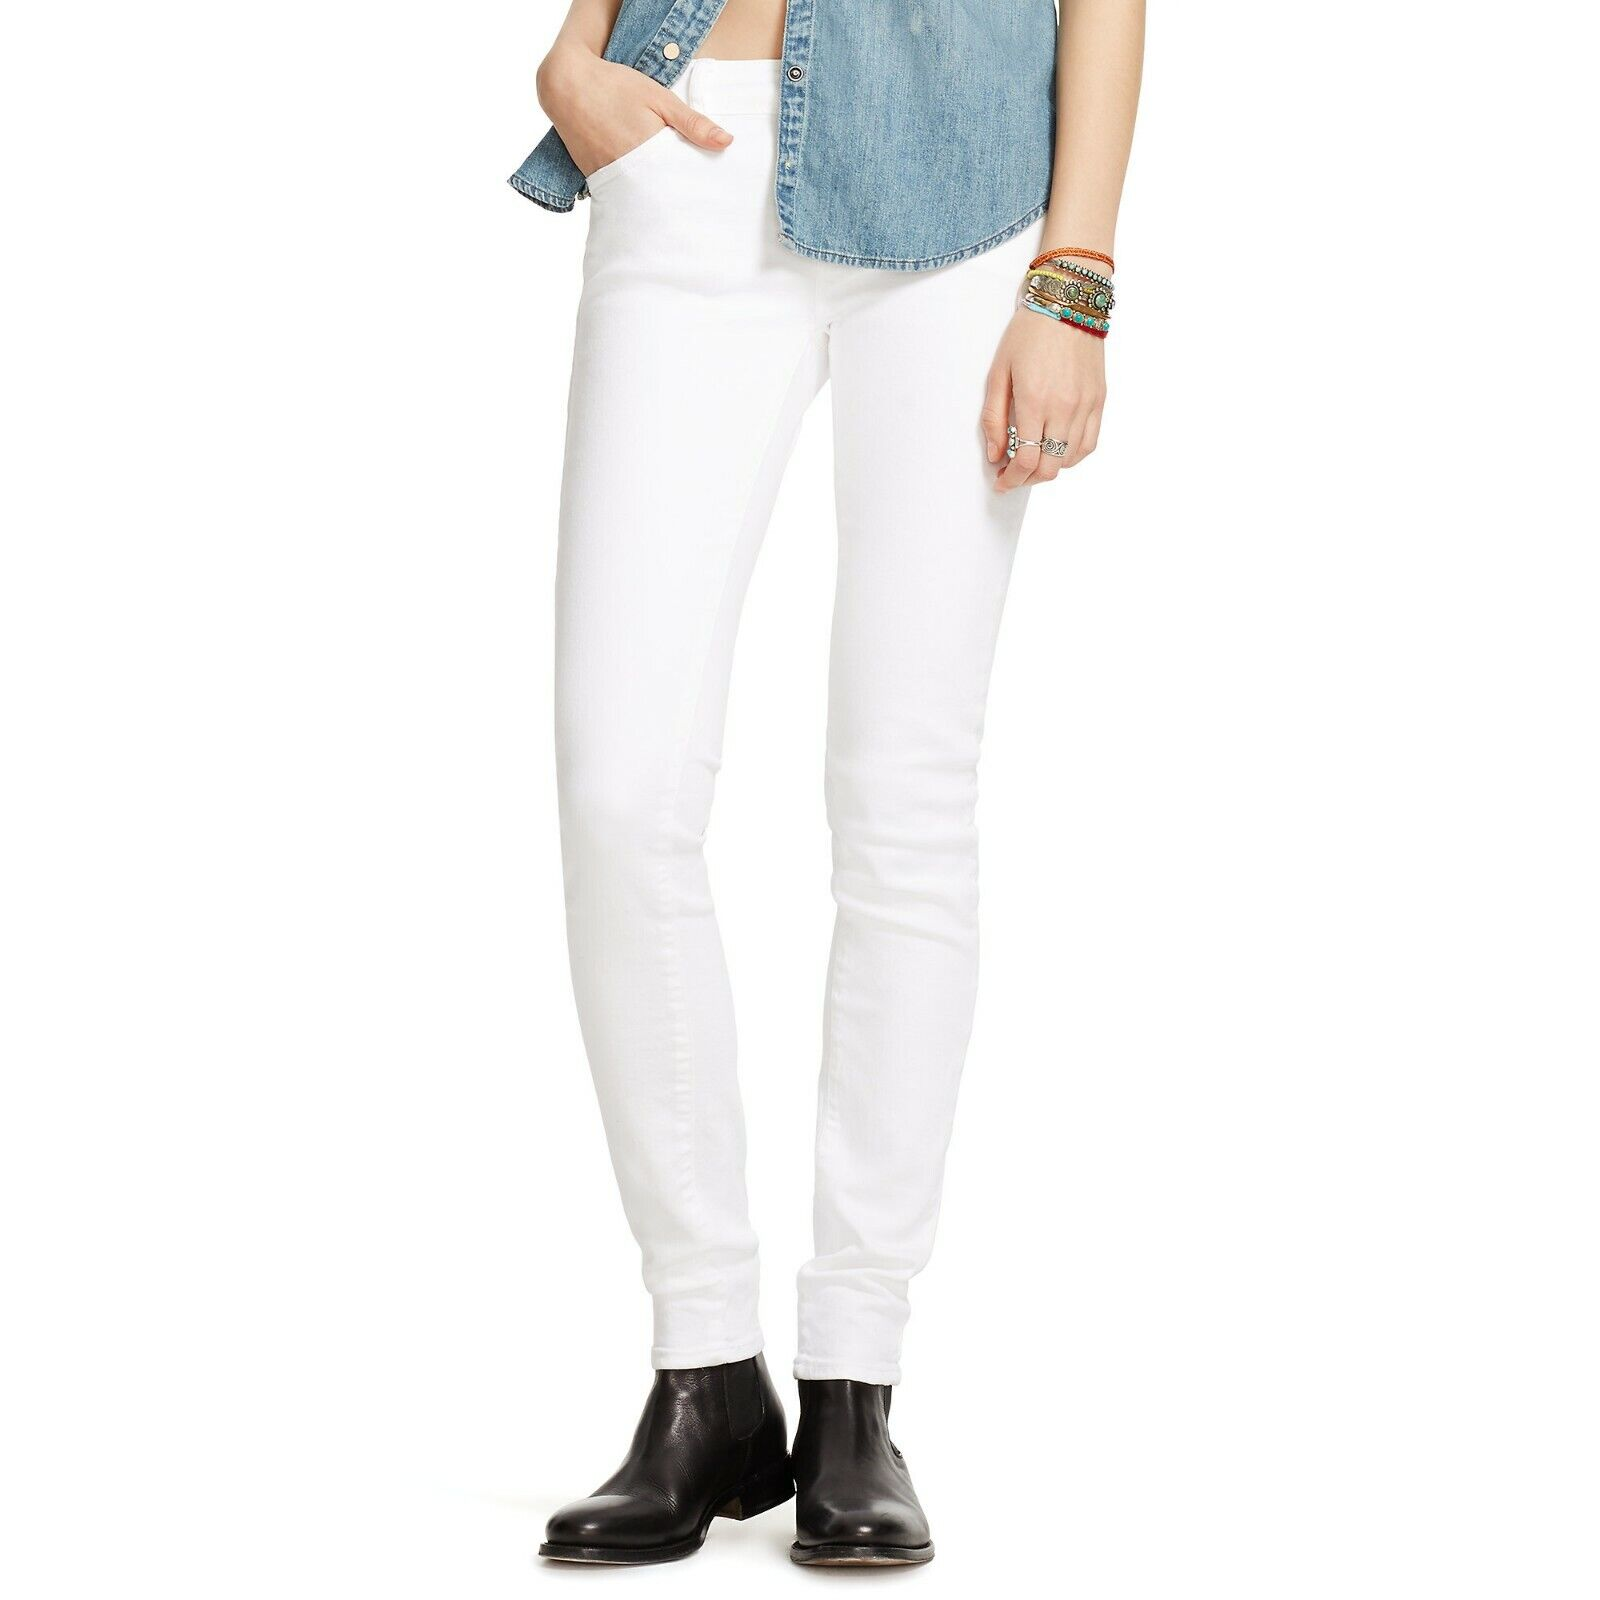 Denim & Supply Ralph Lauren Women's White Bayview Skinny Jean Size 30 x 30